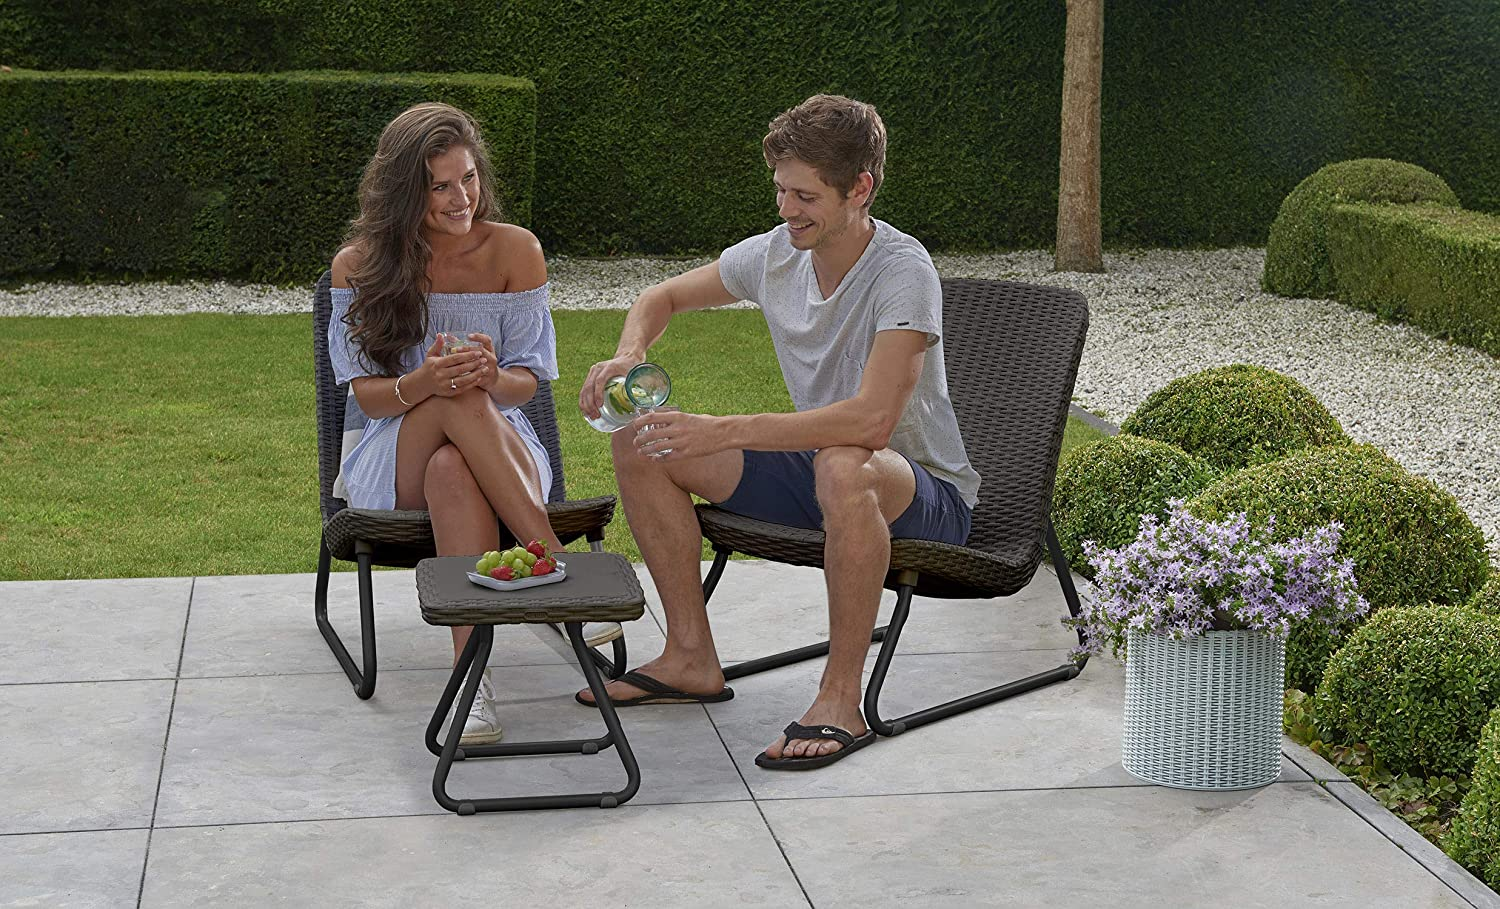 Keter-outdoor-furniture-. 15 Unique Furniture Designs for Outdoor Small Spaces